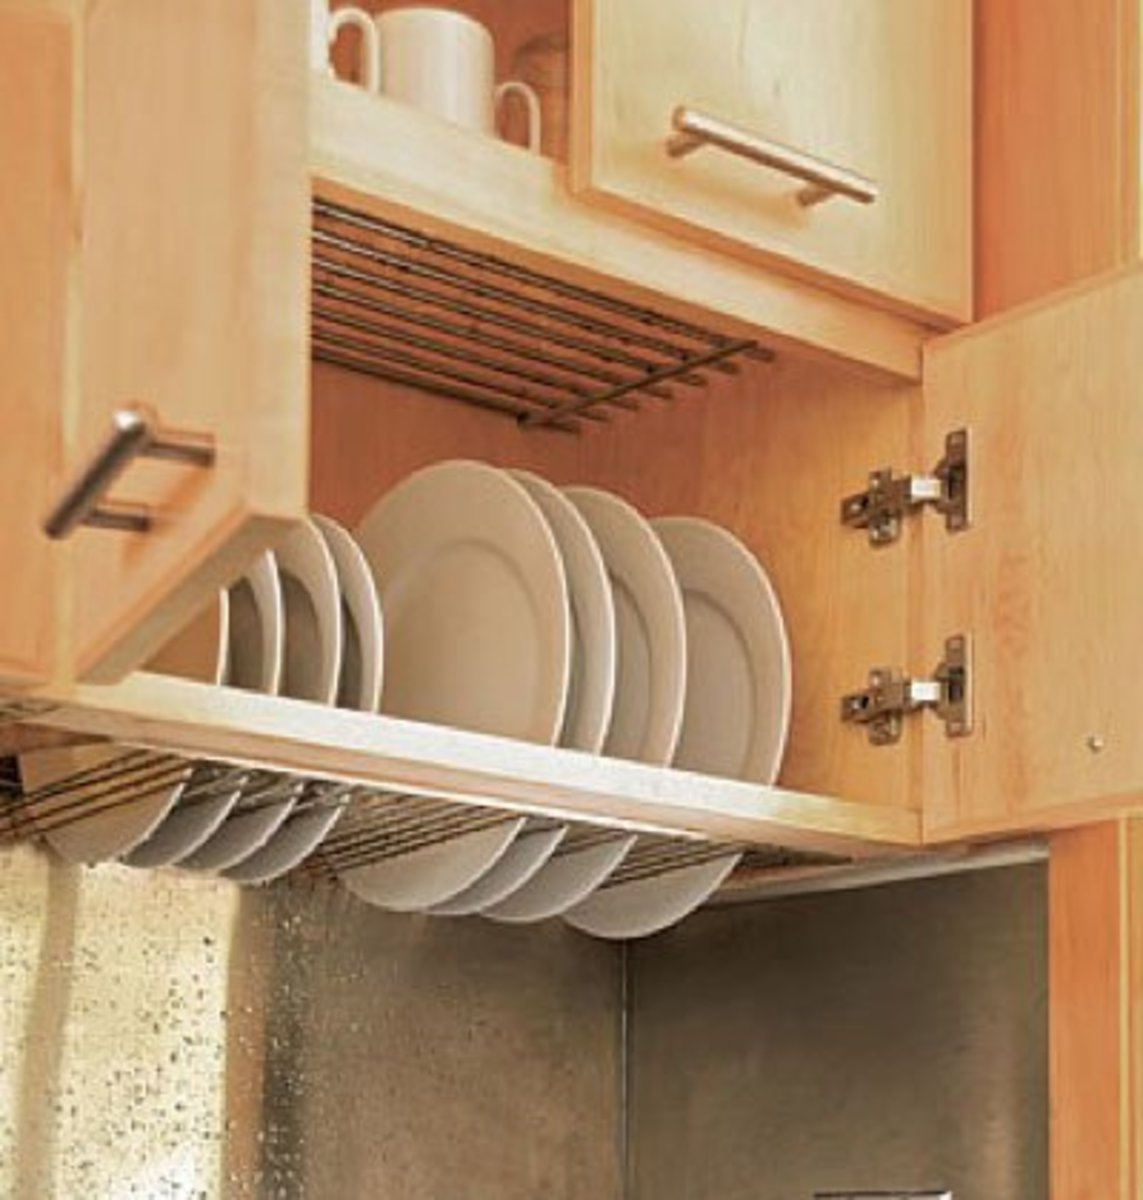 Dish Rack Drainer   Easy Organization Ideas for the Home